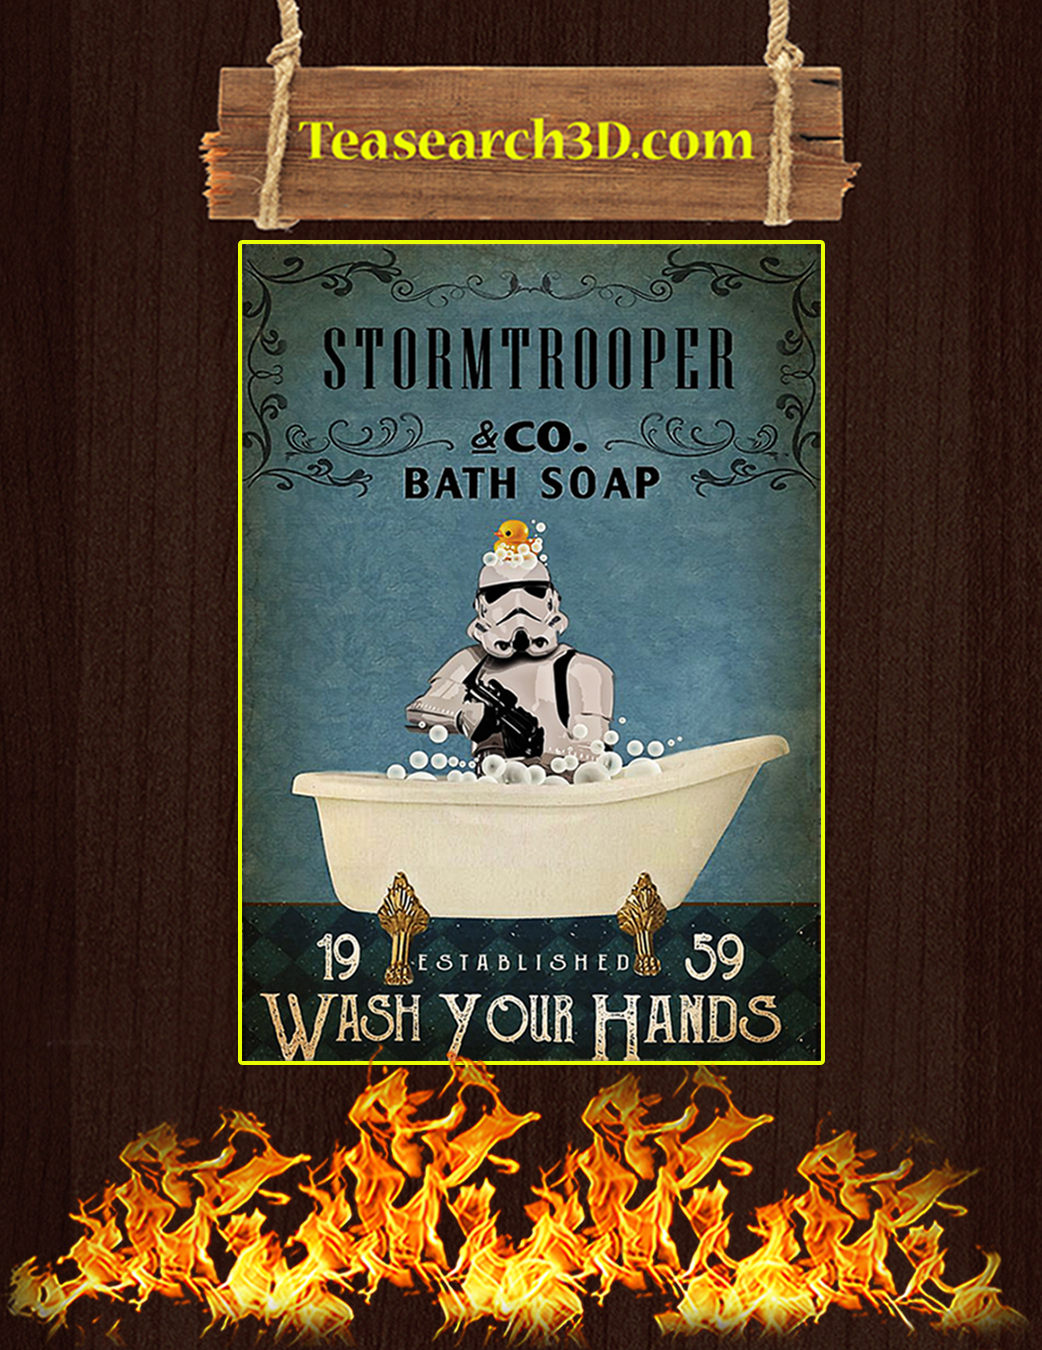 Stormtrooper co bath soap wash your hands poster A1